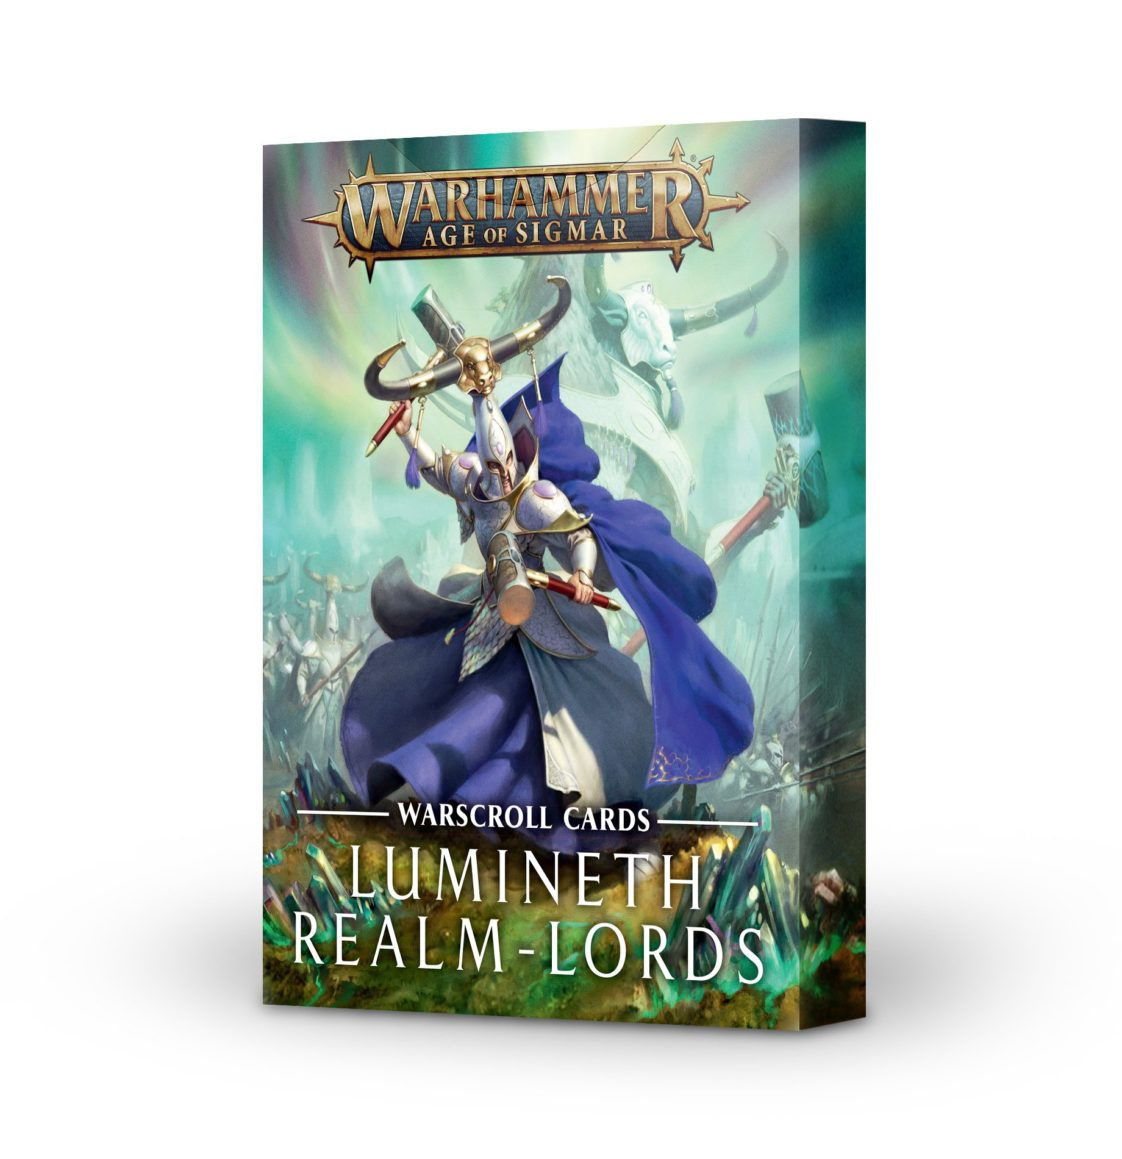 Warscroll Cards: Lumineth Realm-lords (English)